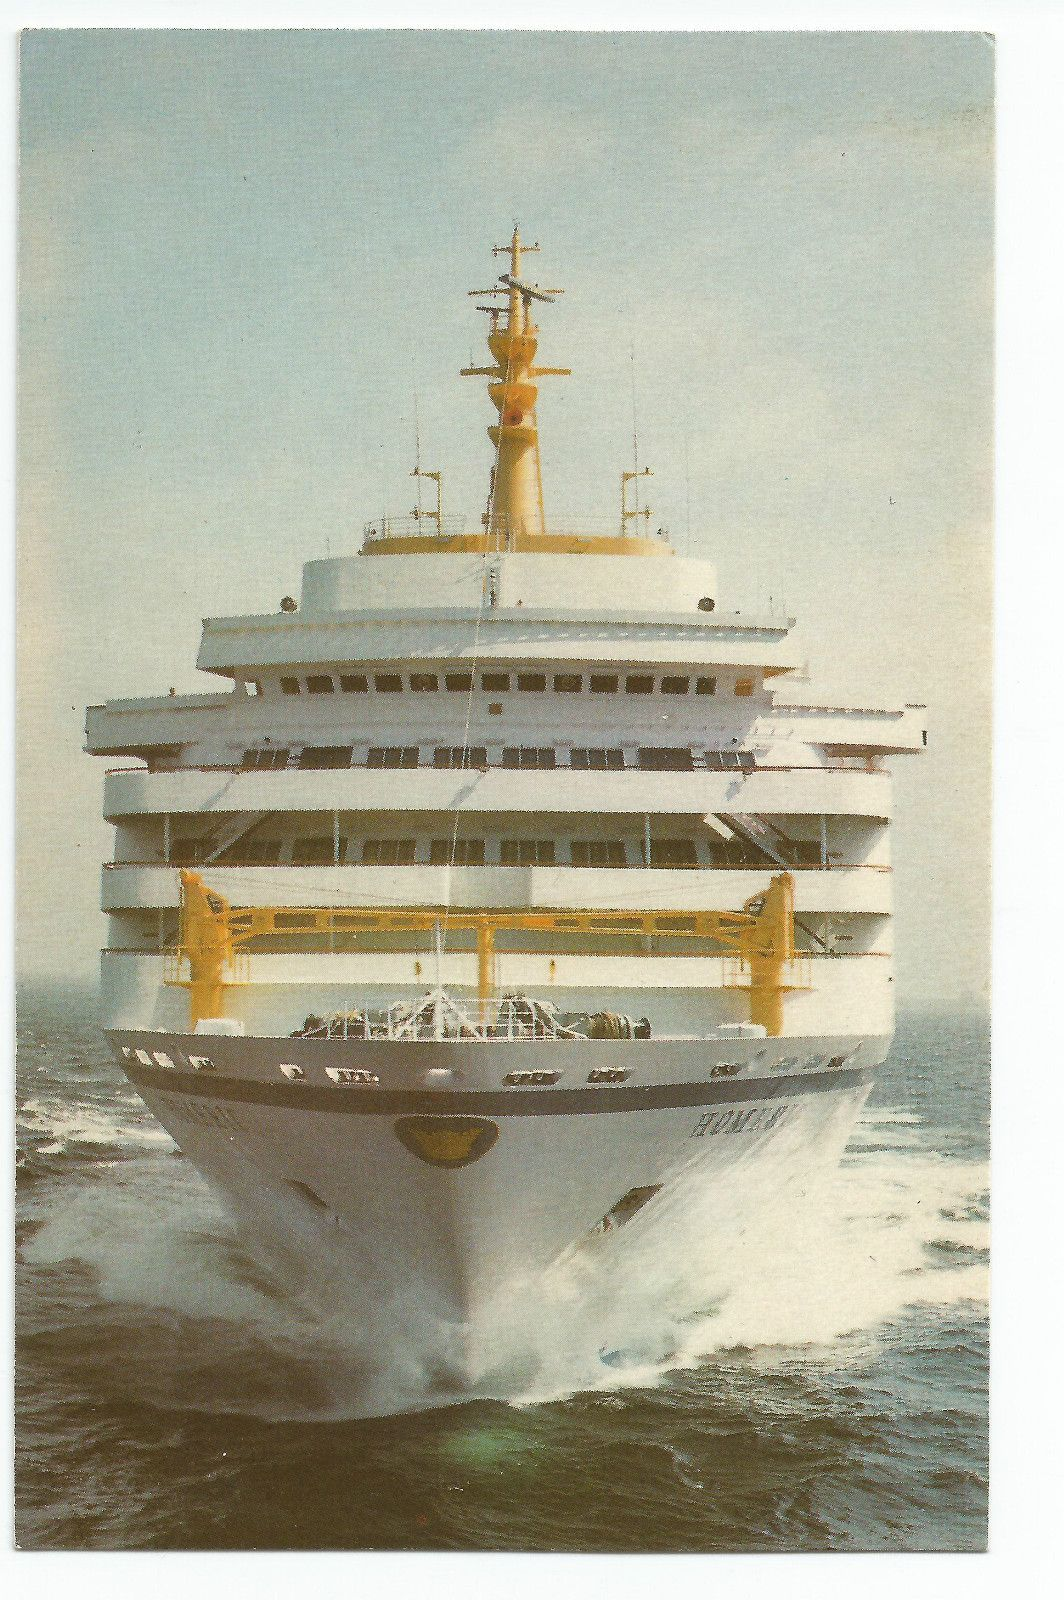 Home Lines Homeric Cruise SHIP Vintage Postcard EBay Memories - Homeric cruise ship